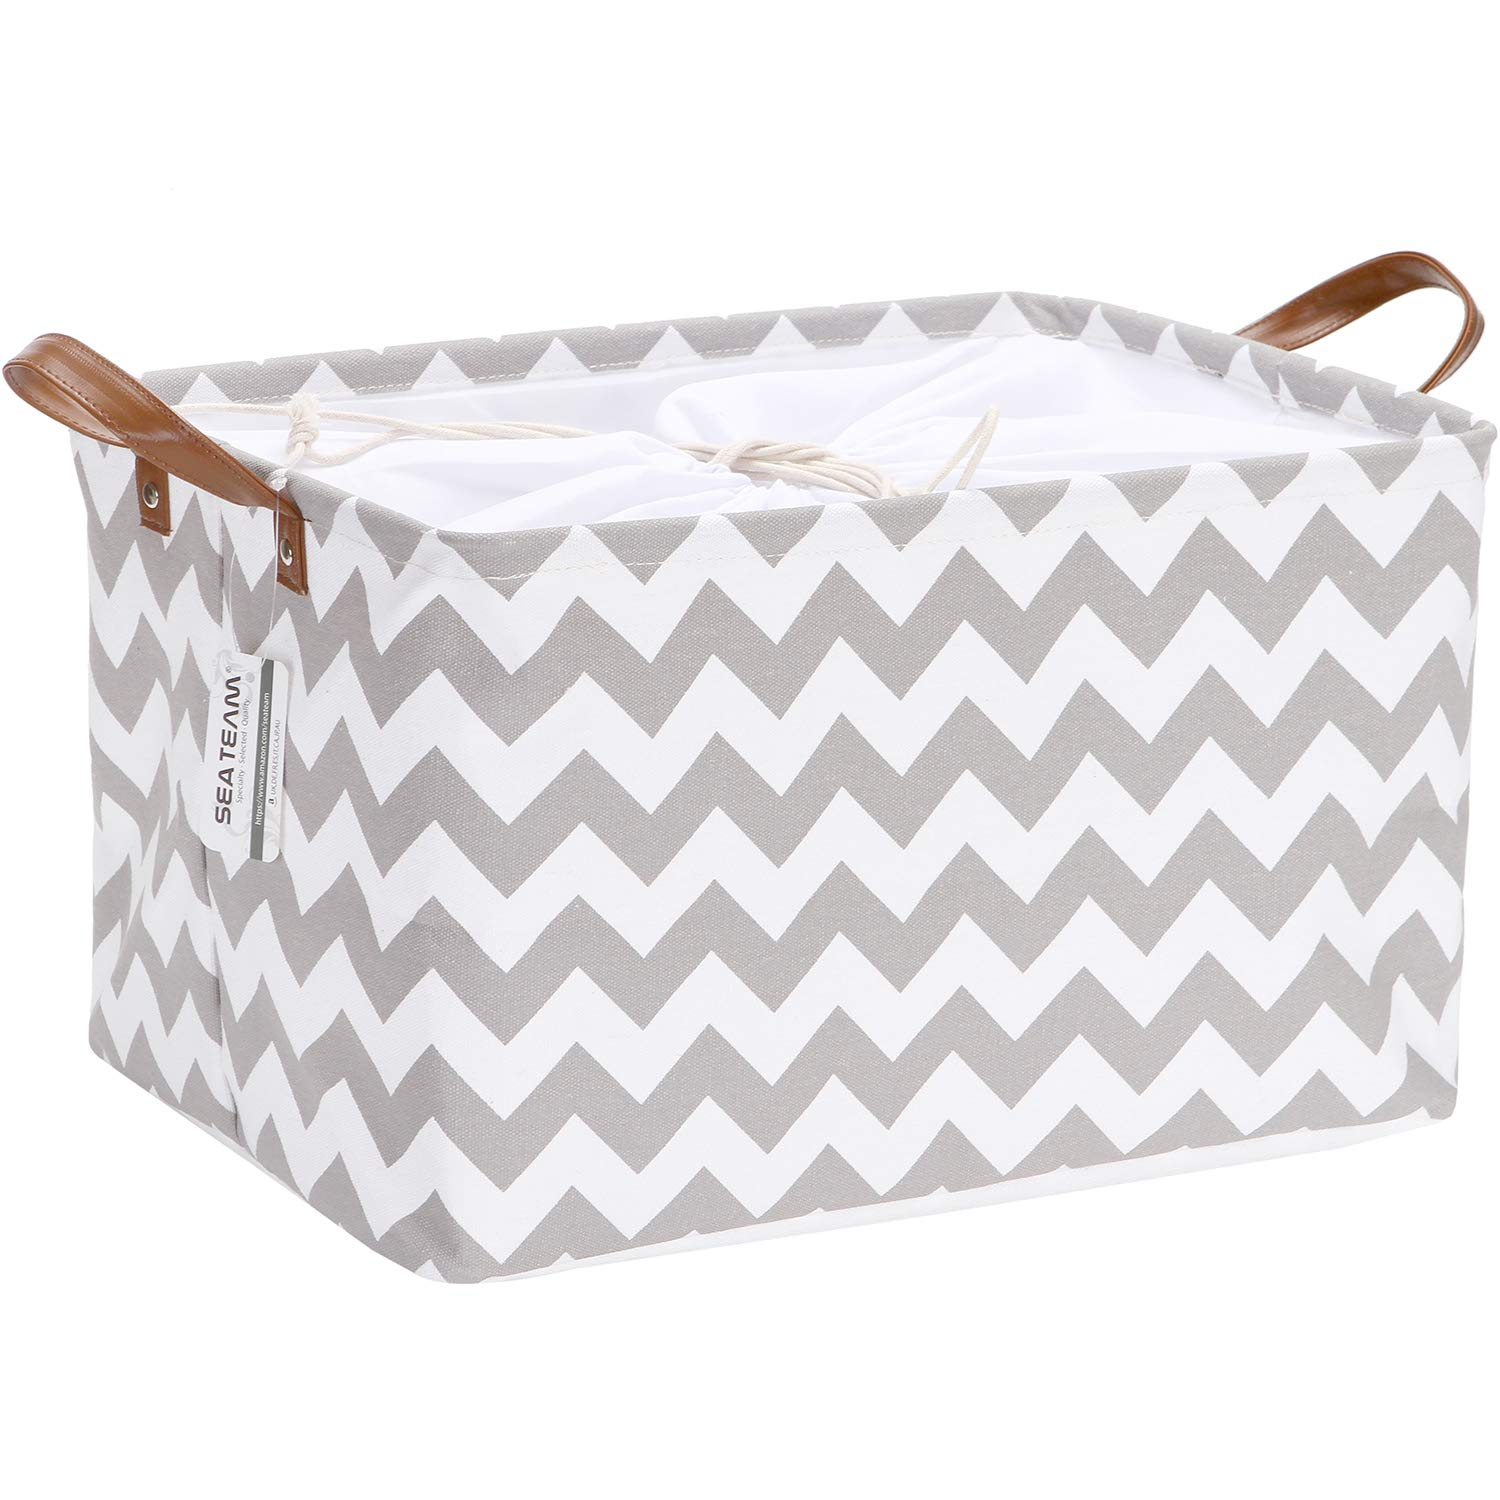 Sea Team Modern Chevron Pattern Canvas Fabric Storage Basket Collapsible Geometric Design Storage Bin with Drawstring Cover and PU Leather Handles, 16.5 by 11.8 inches, Waterproof Inner, Grey